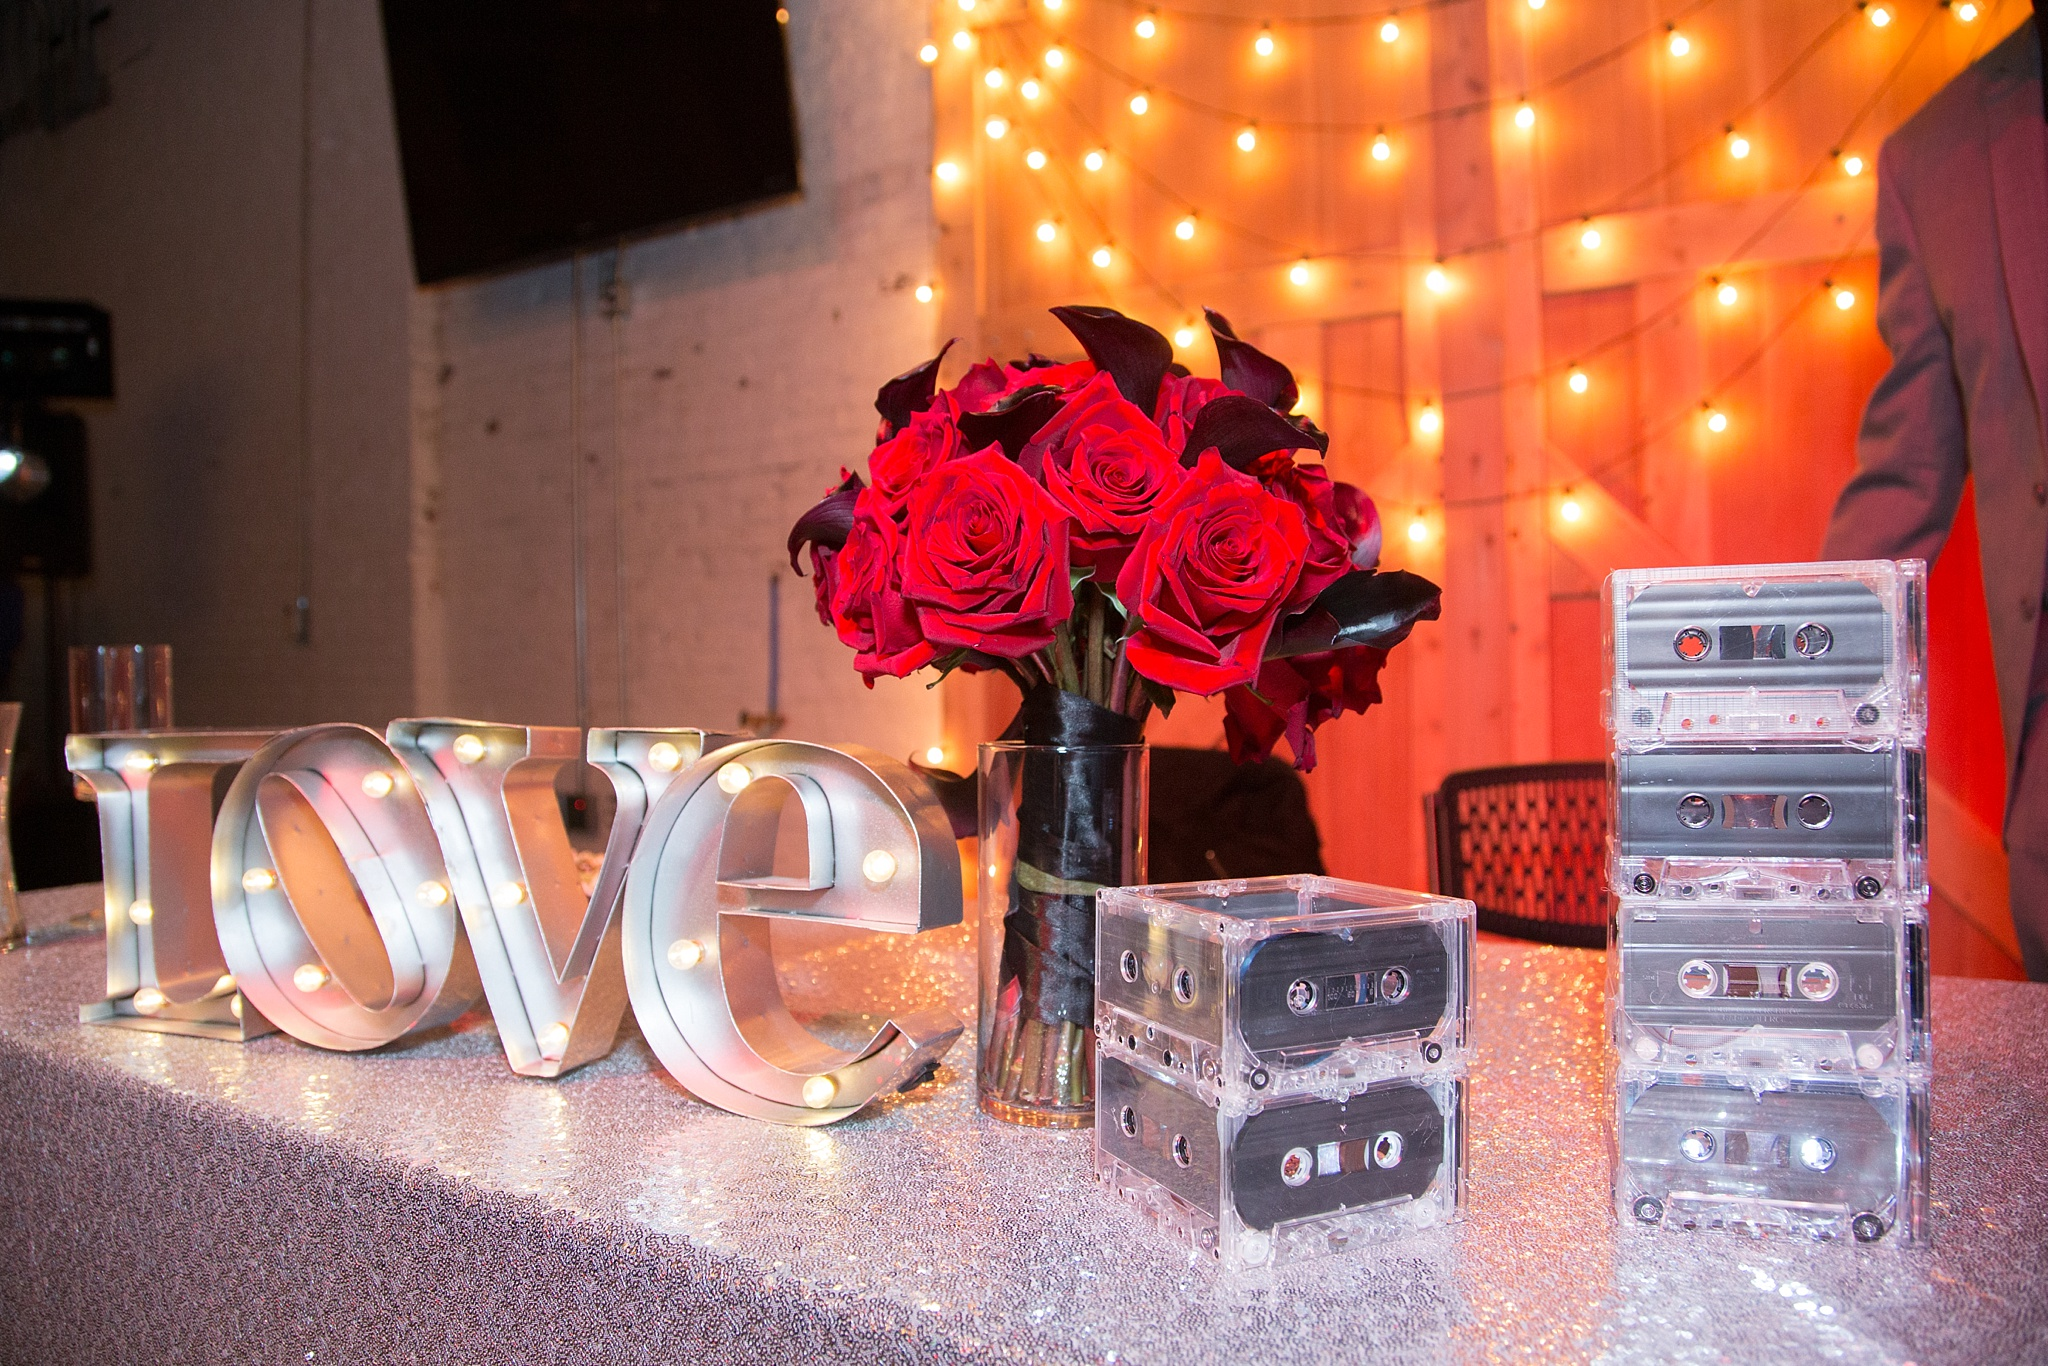 Alecia & Nick's Rock 'N Roll Themed Wedding at The Studios at Overland Crossing, The Studios at Overland Crossing, The Studios, Overland Crossing, Denver Wedding Photographer, Denver Wedding, Downtown Denver Wedding, Rock N Roll Wedding, Rock Wedding, sweetheart table, head table, wedding reception, reception details